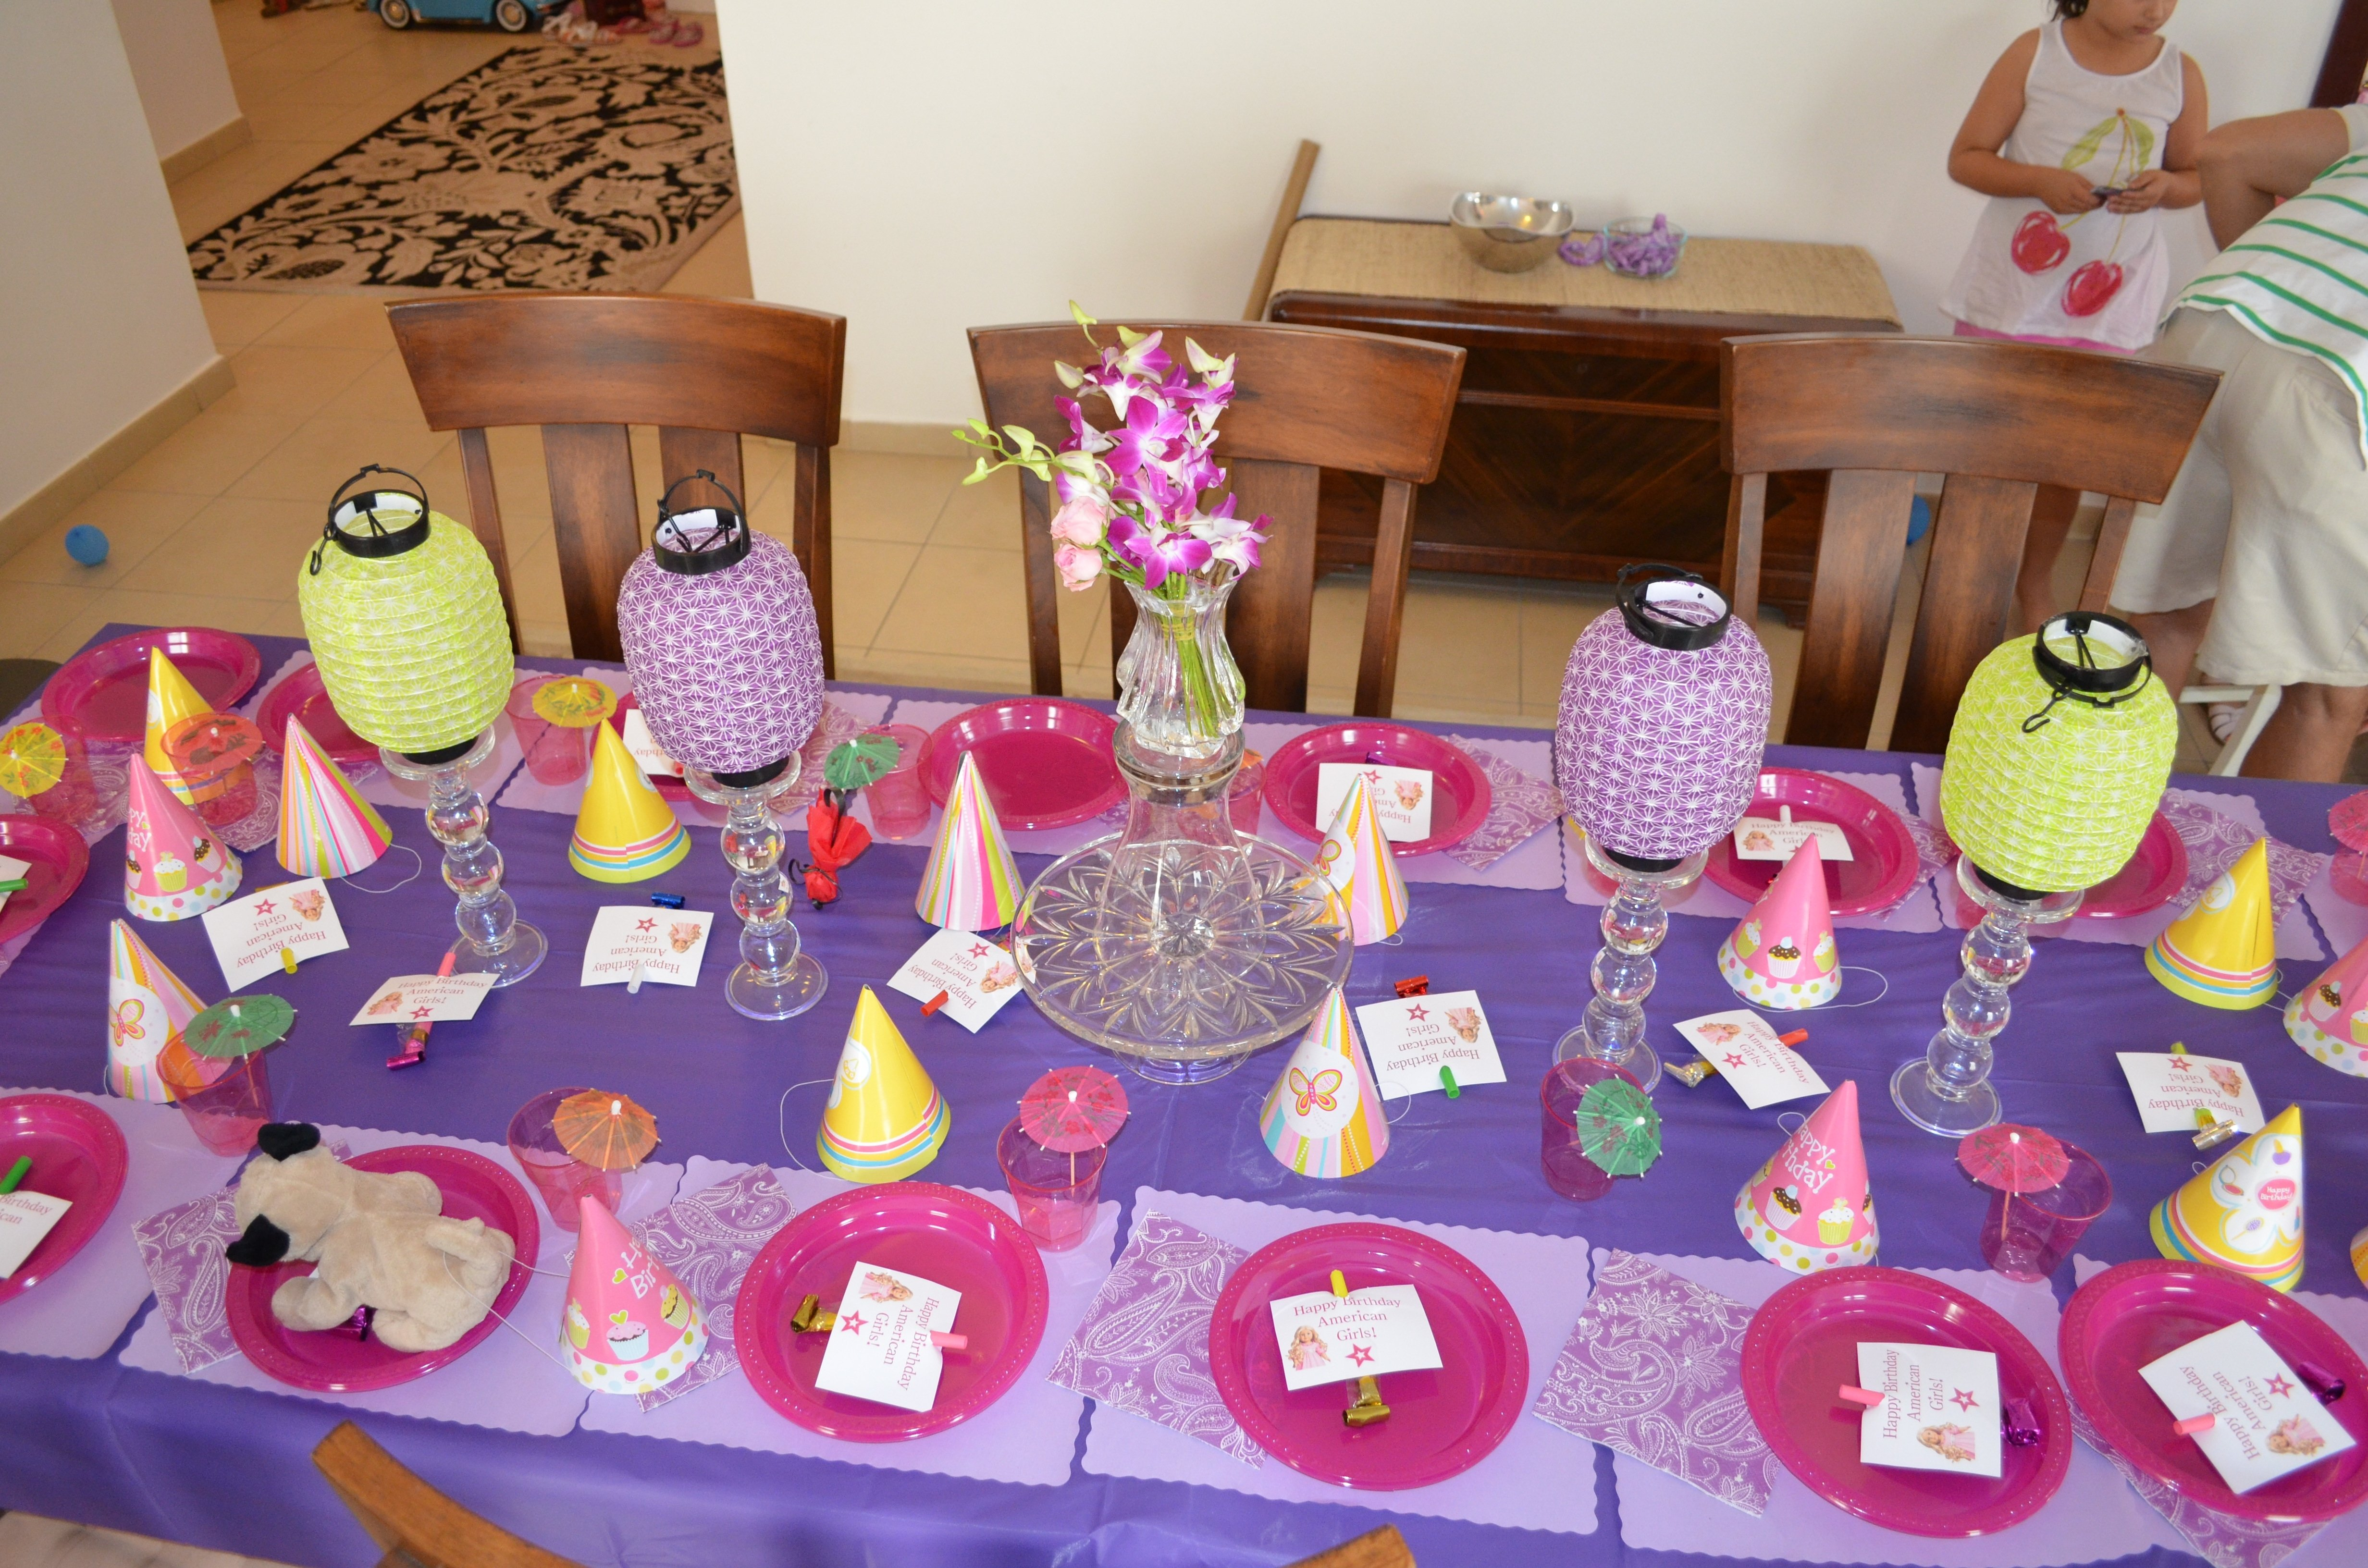 10 Most Popular 7 Yr Old Girl Birthday Party Ideas birthday party ideas for 5 year old daughter image inspiration of